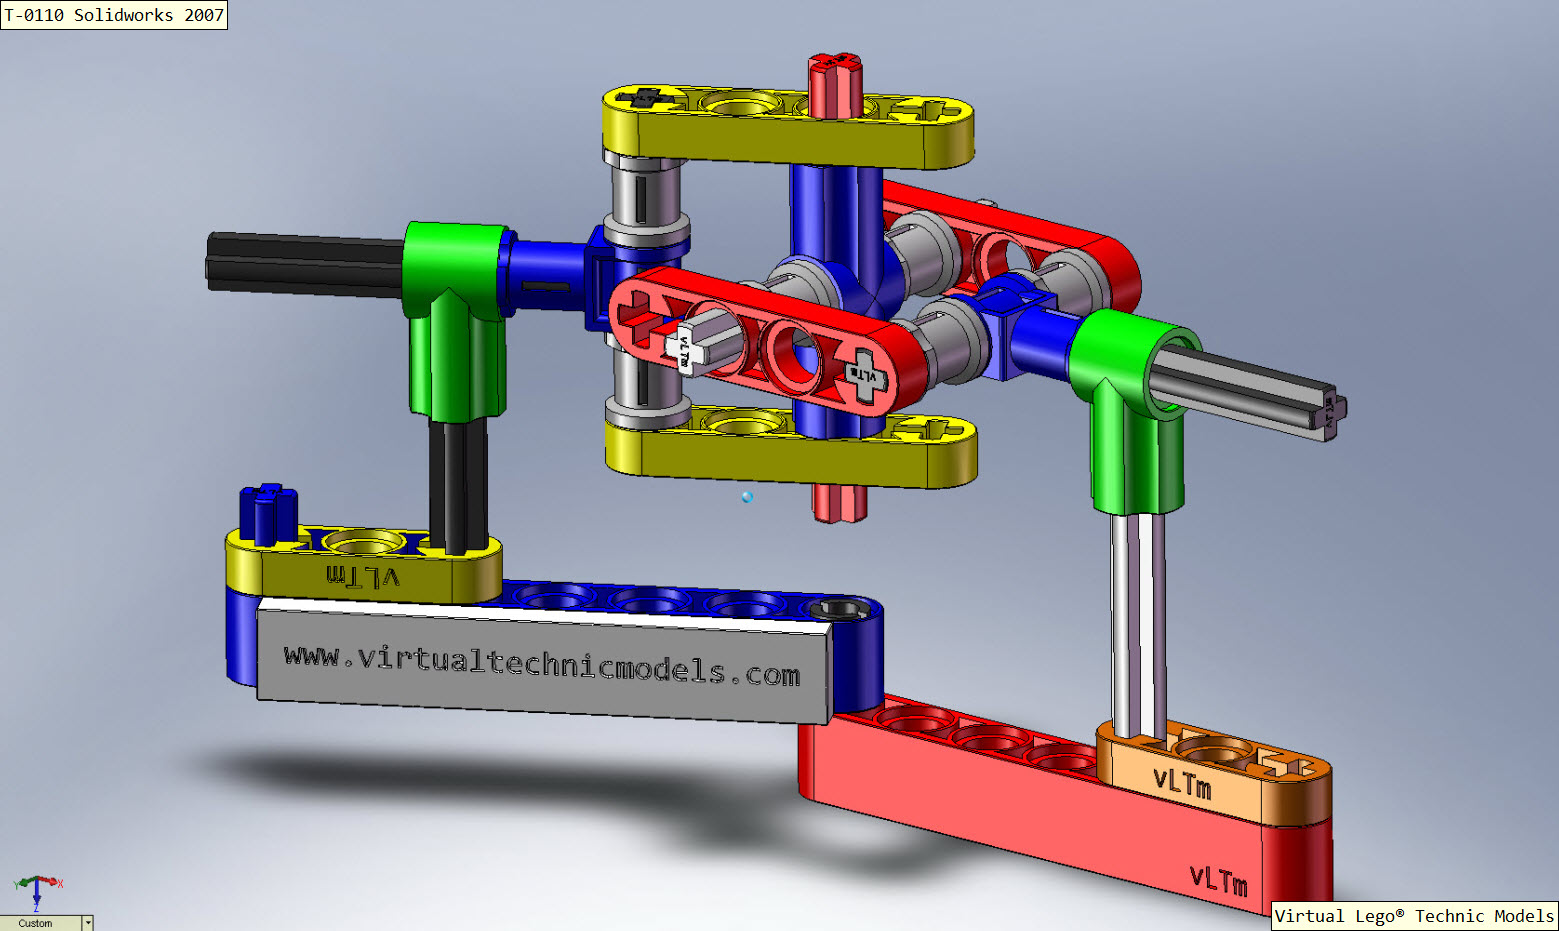 t-0110-03-solidworks_2007.jpg